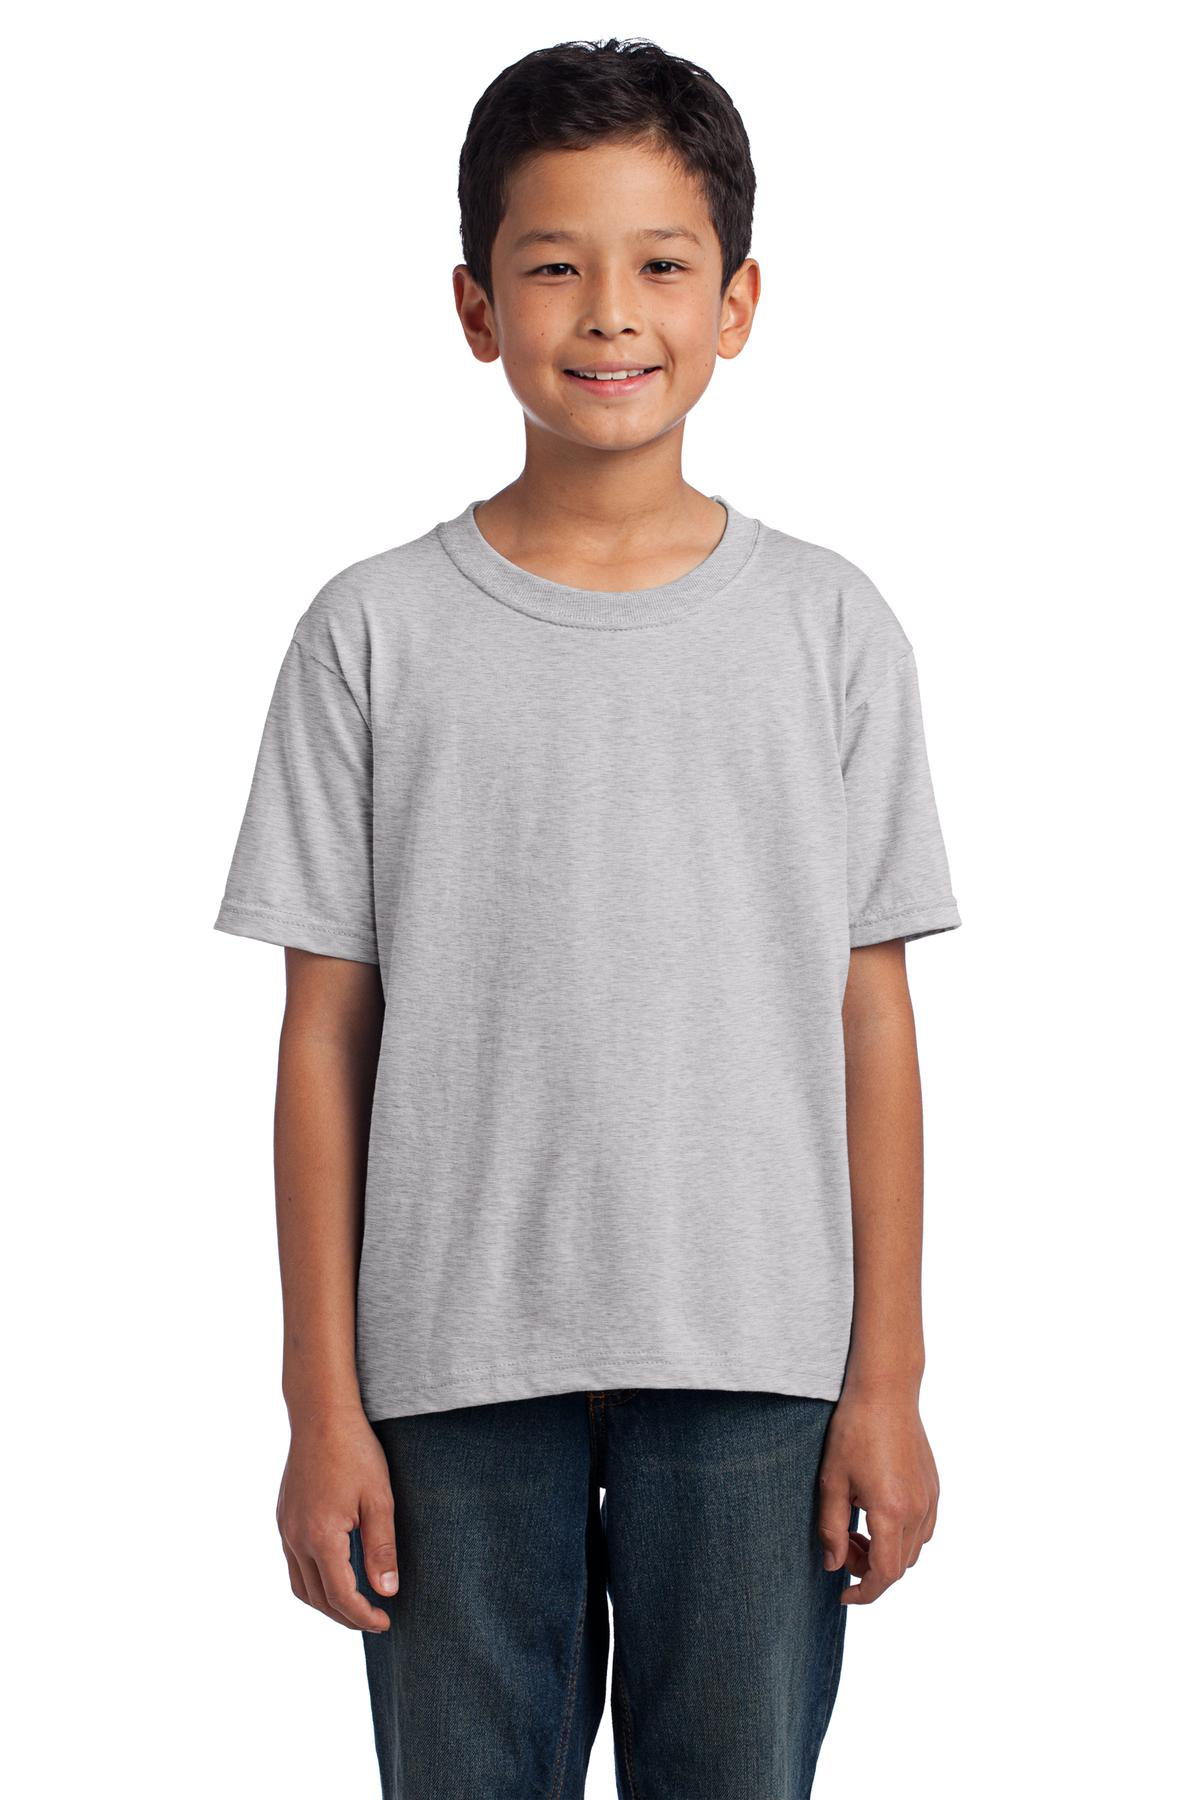 Fruit of the Loom ®  Youth HD Cotton ™  100% Cotton T-Shirt. 3930B - Athletic Heather*